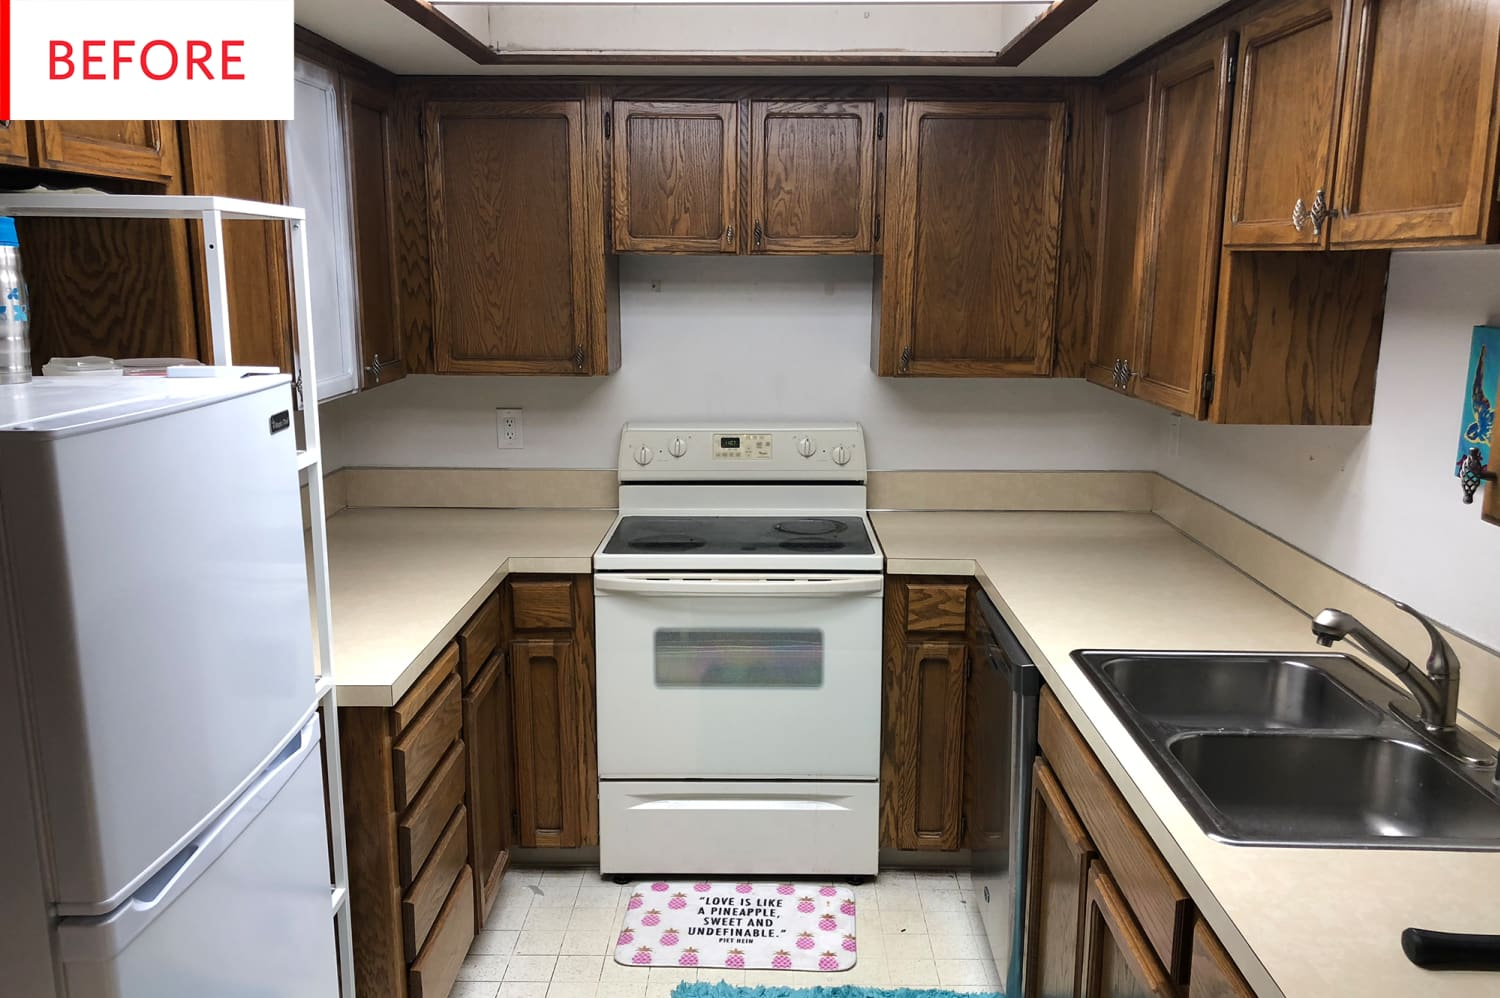 Before And After Kitchen Remodels On A Budget: Budget DIY Kitchen Remodel